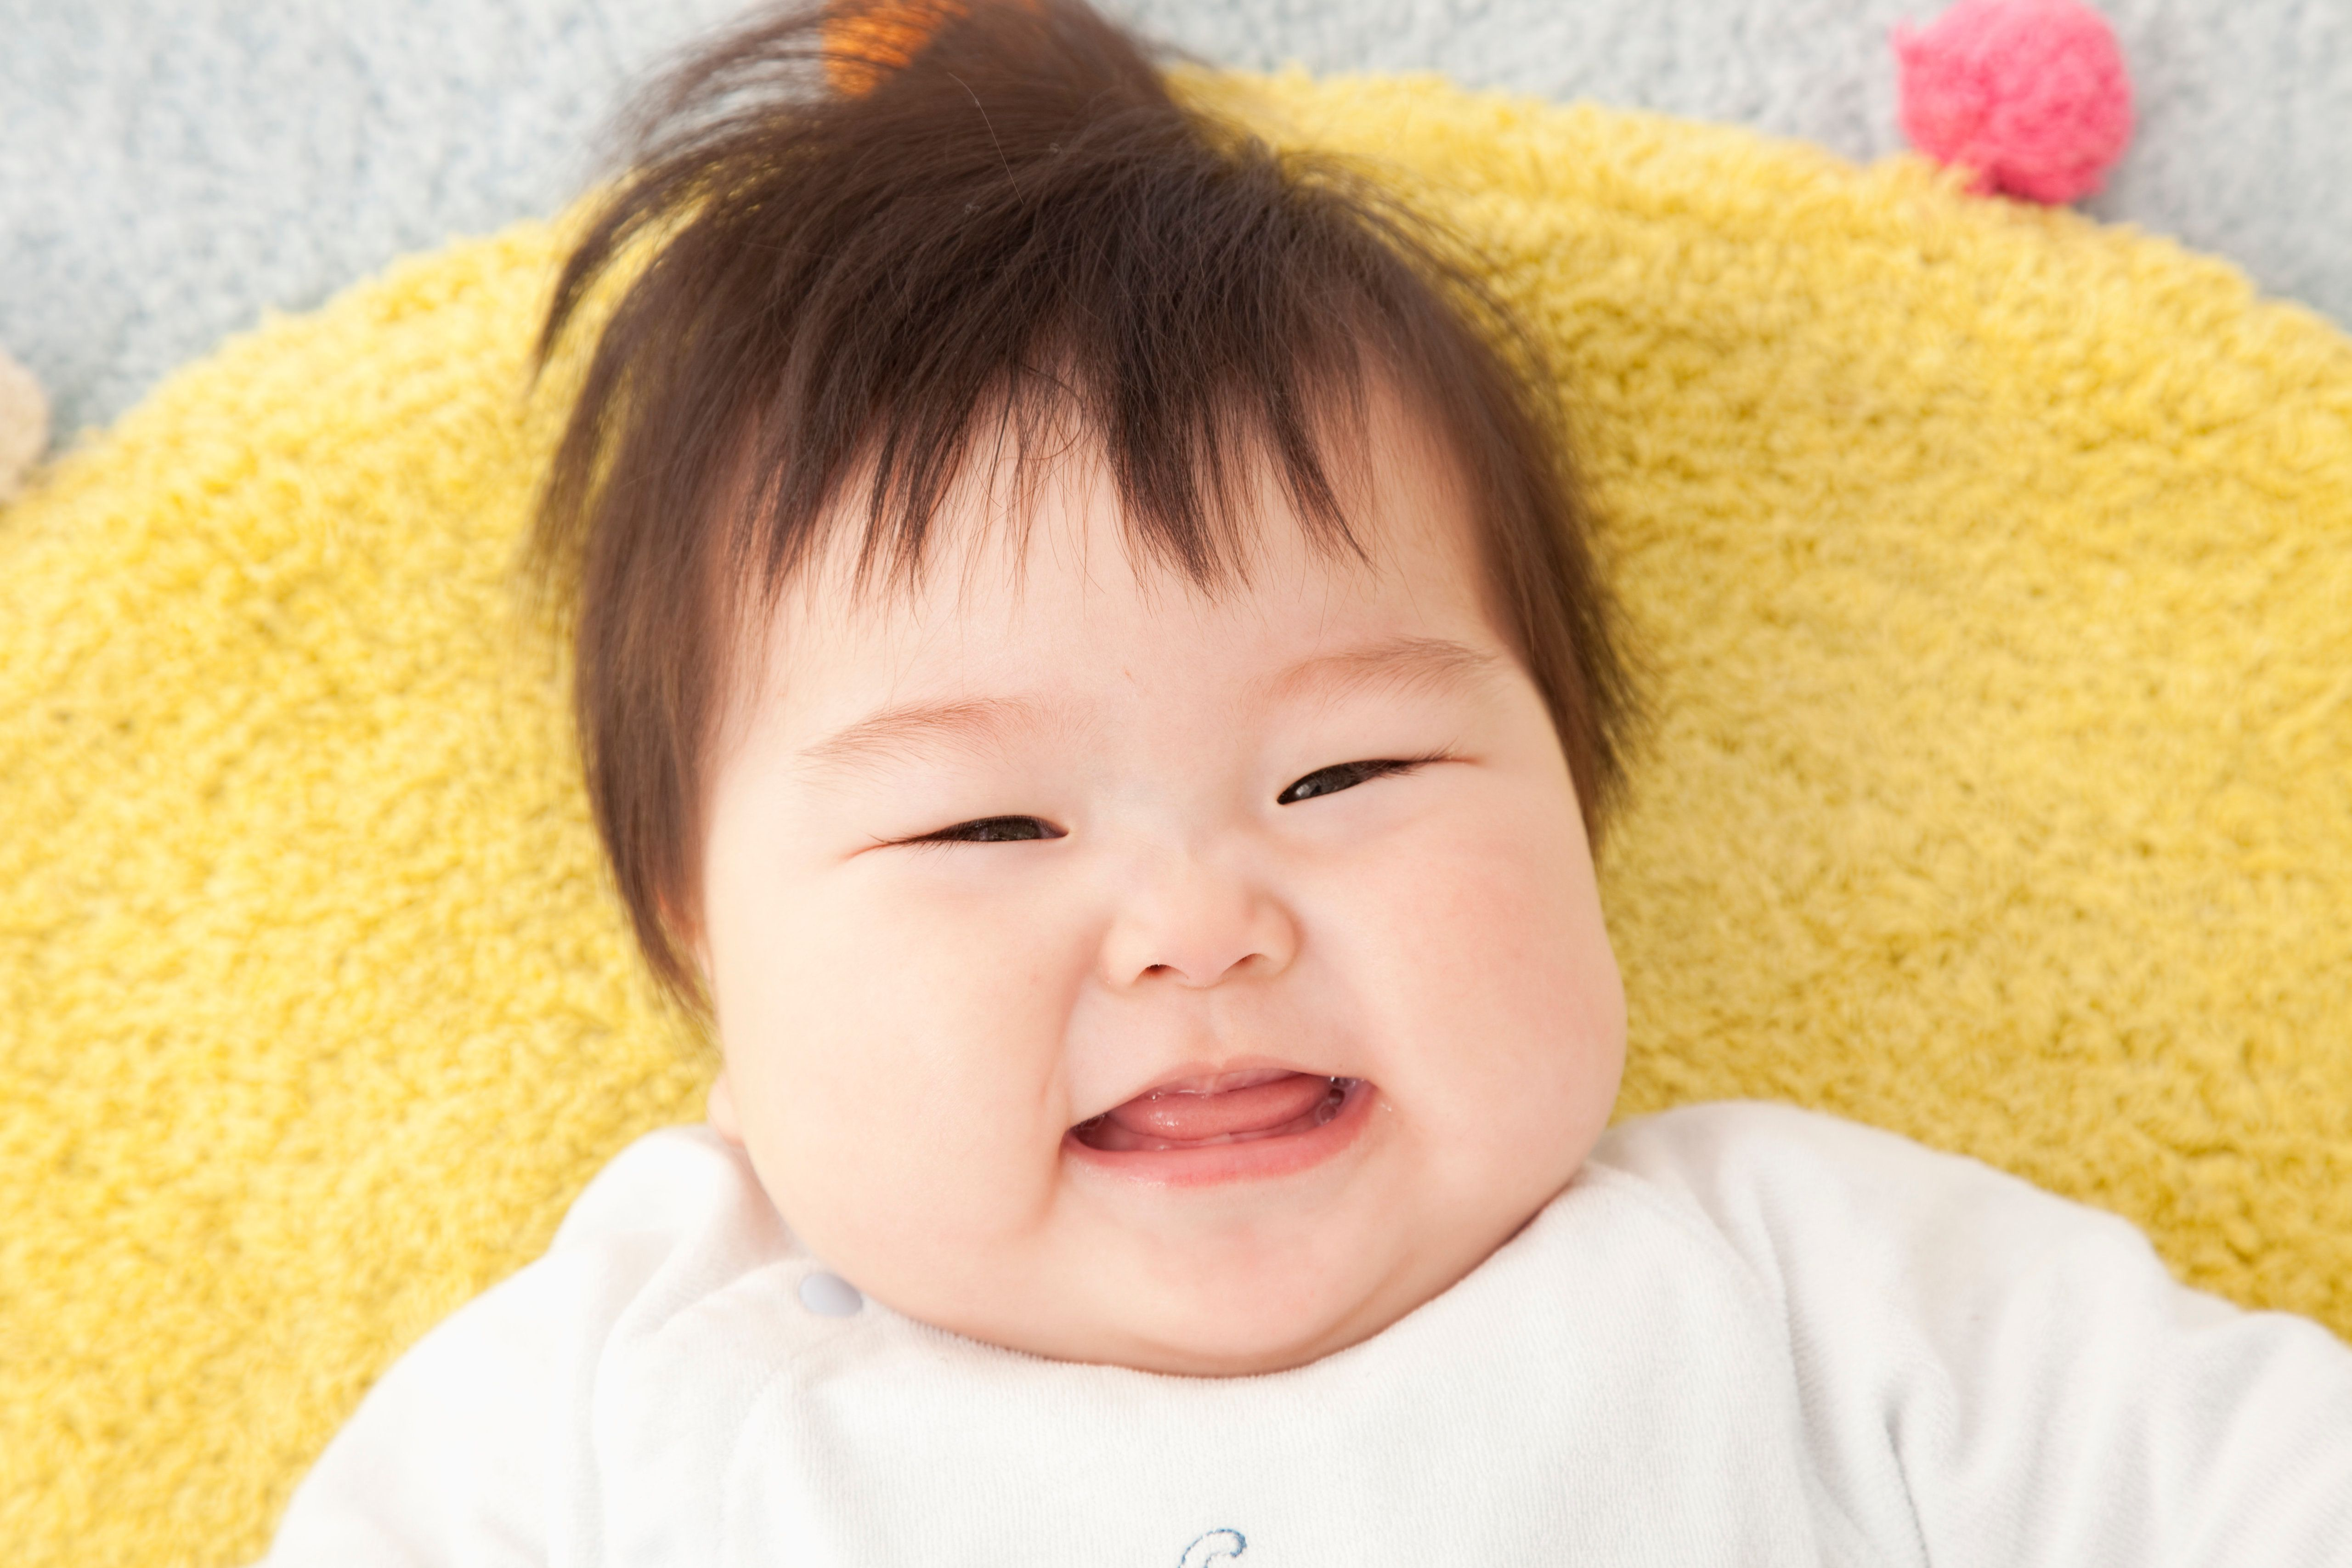 We've rounded up baby names that start with the letter 'A' — like Aria, Autumn, Axel and Andre.